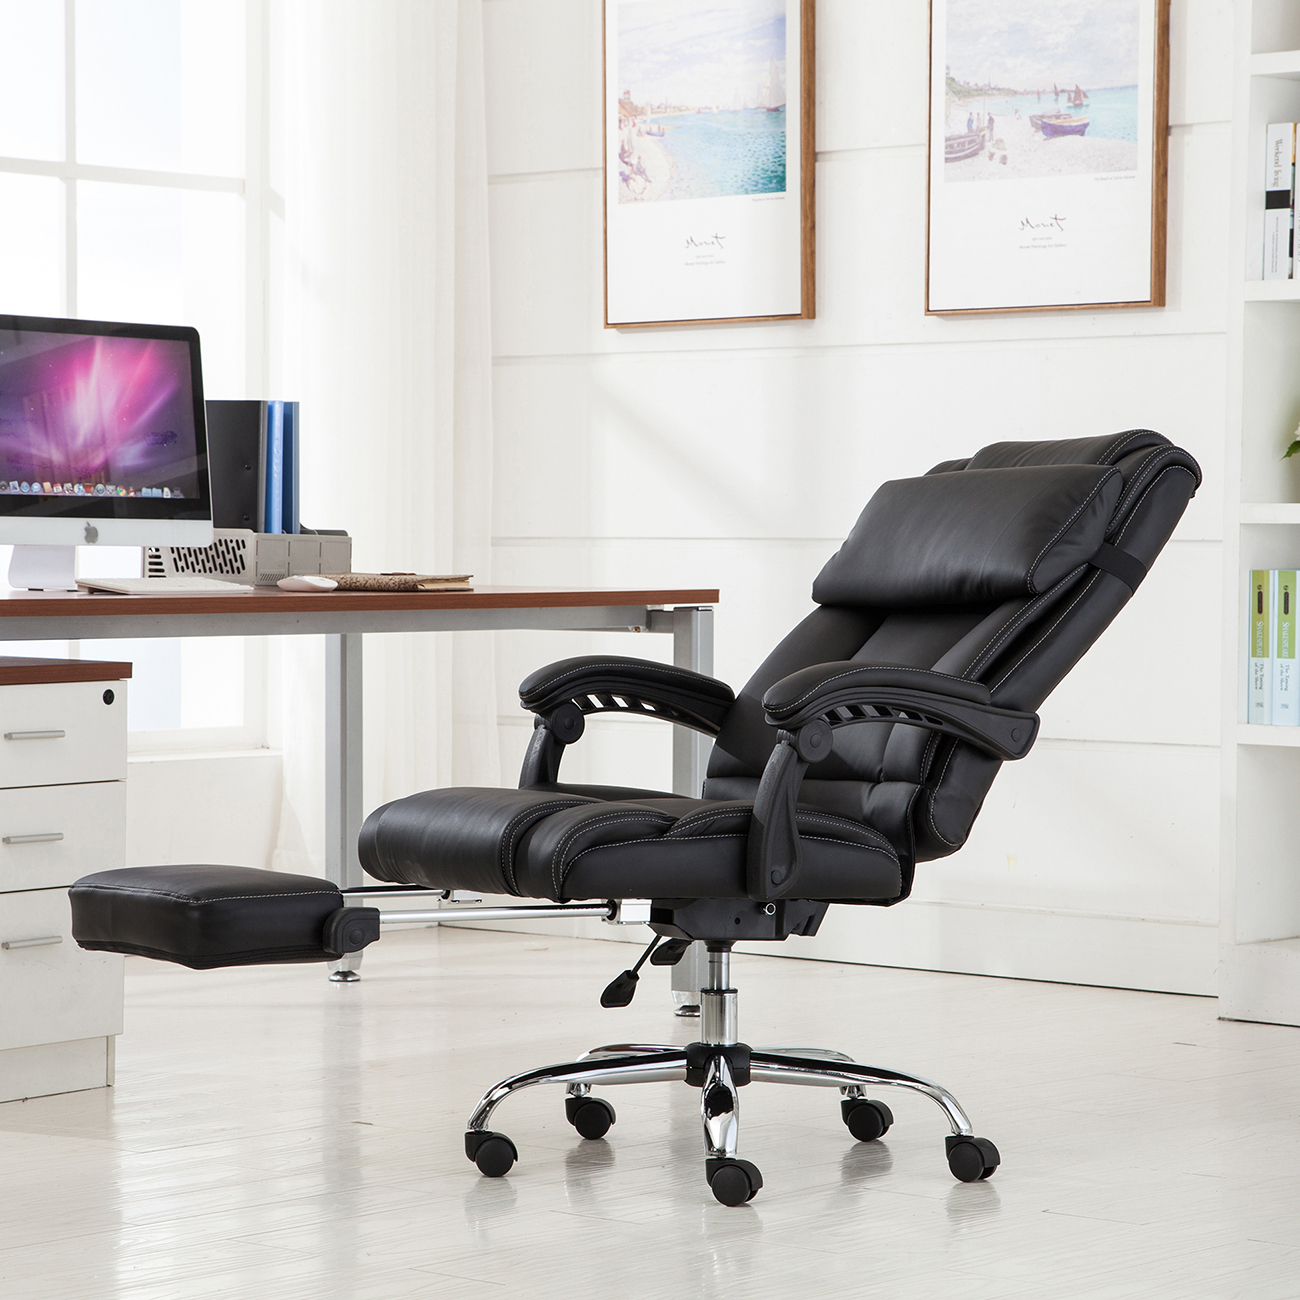 Executive Reclining Office Chair Ergonomic High Back Leather Footrest Armchair & Executive Reclining Office Chair Ergonomic High Back Leather ...